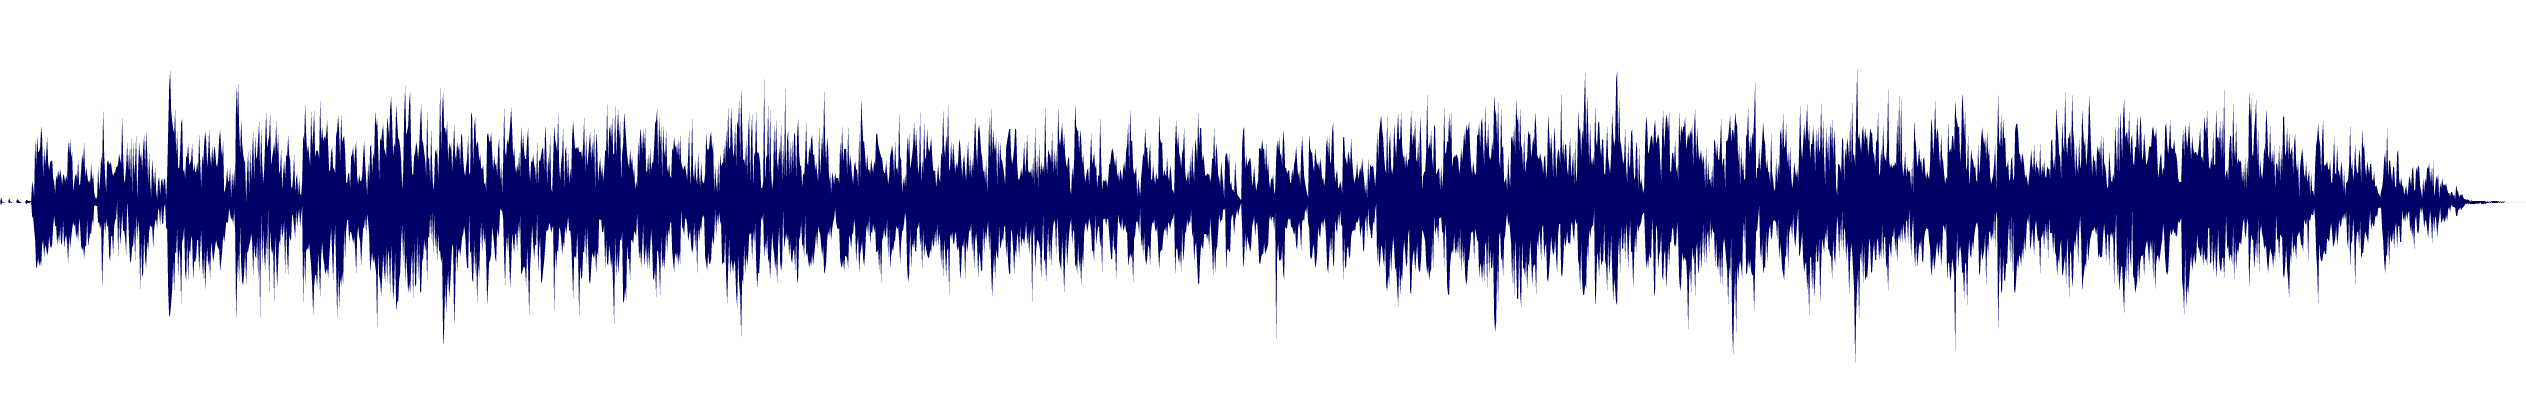 waveform of track #107134